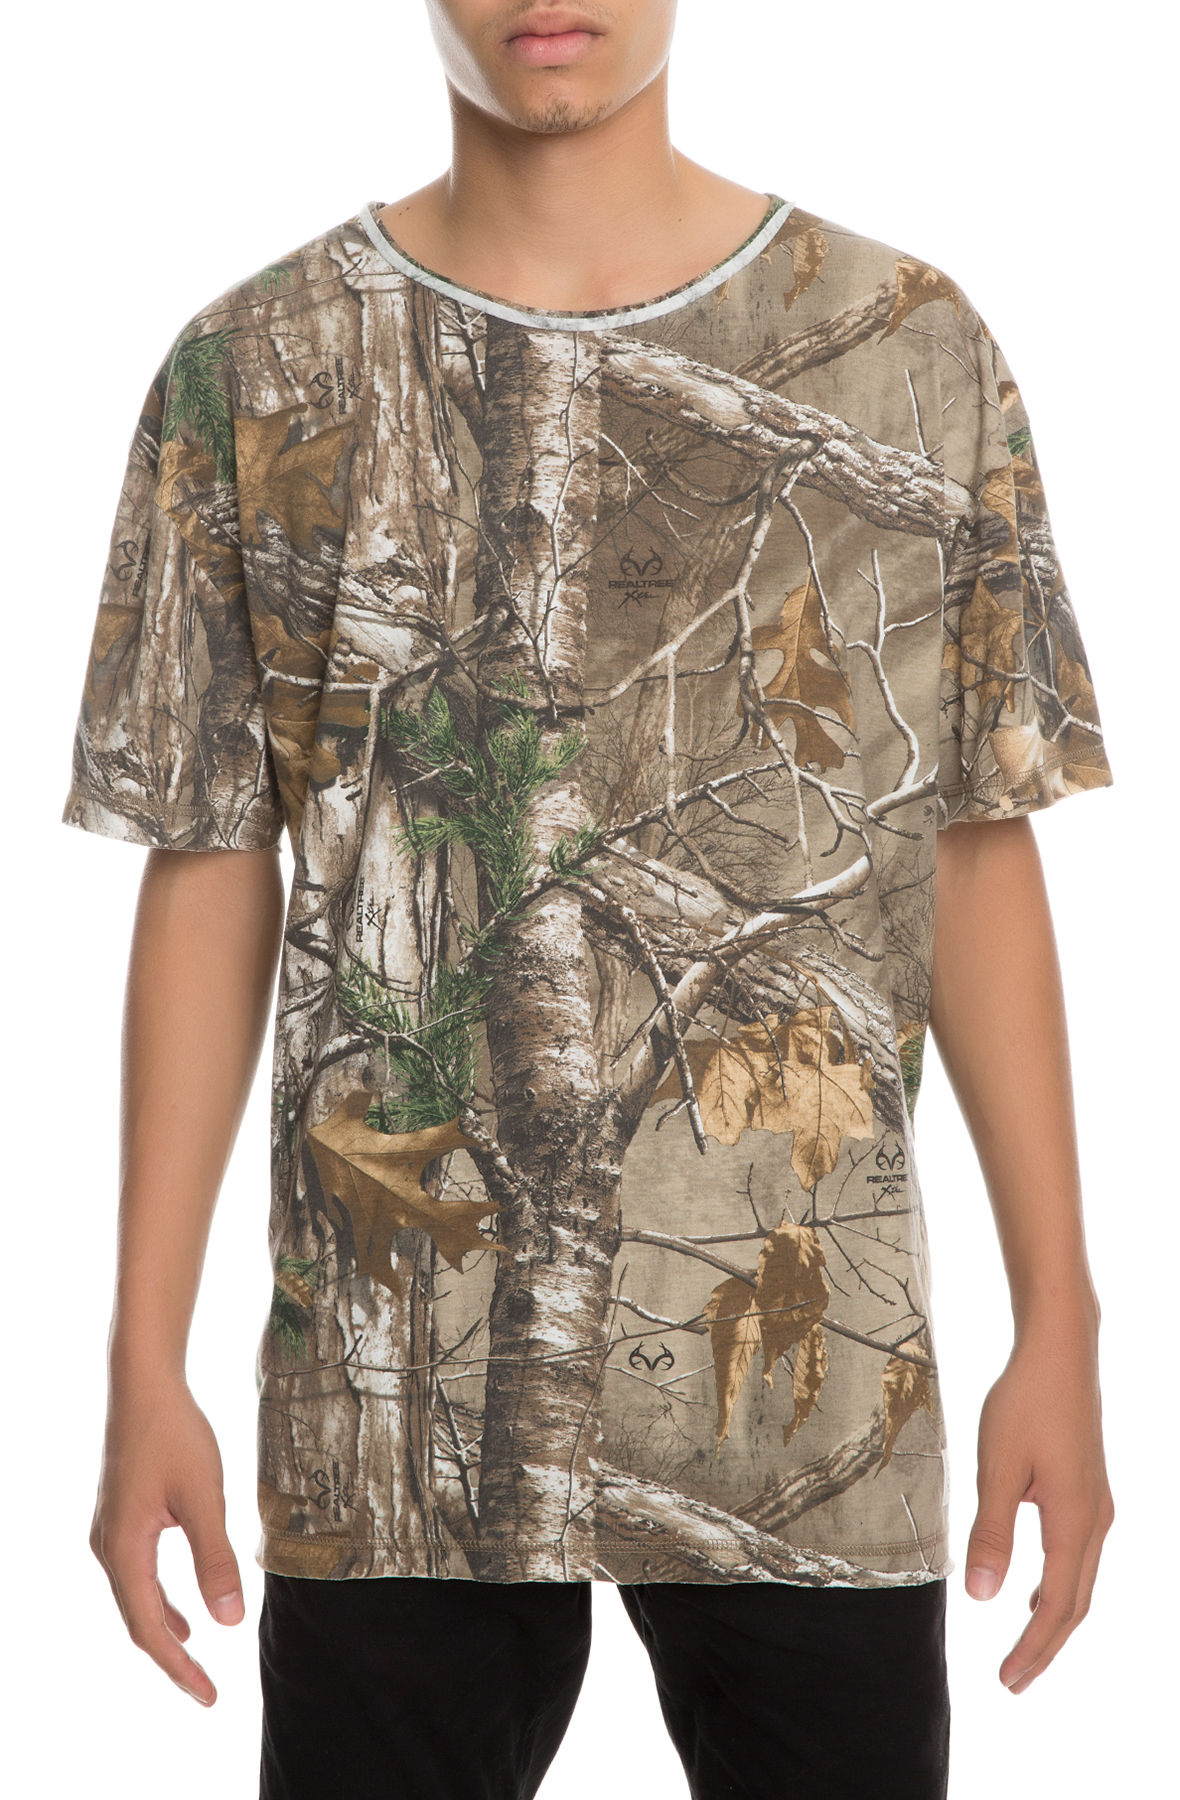 Image of The Sparrow Short Sleeve Tee in Camo